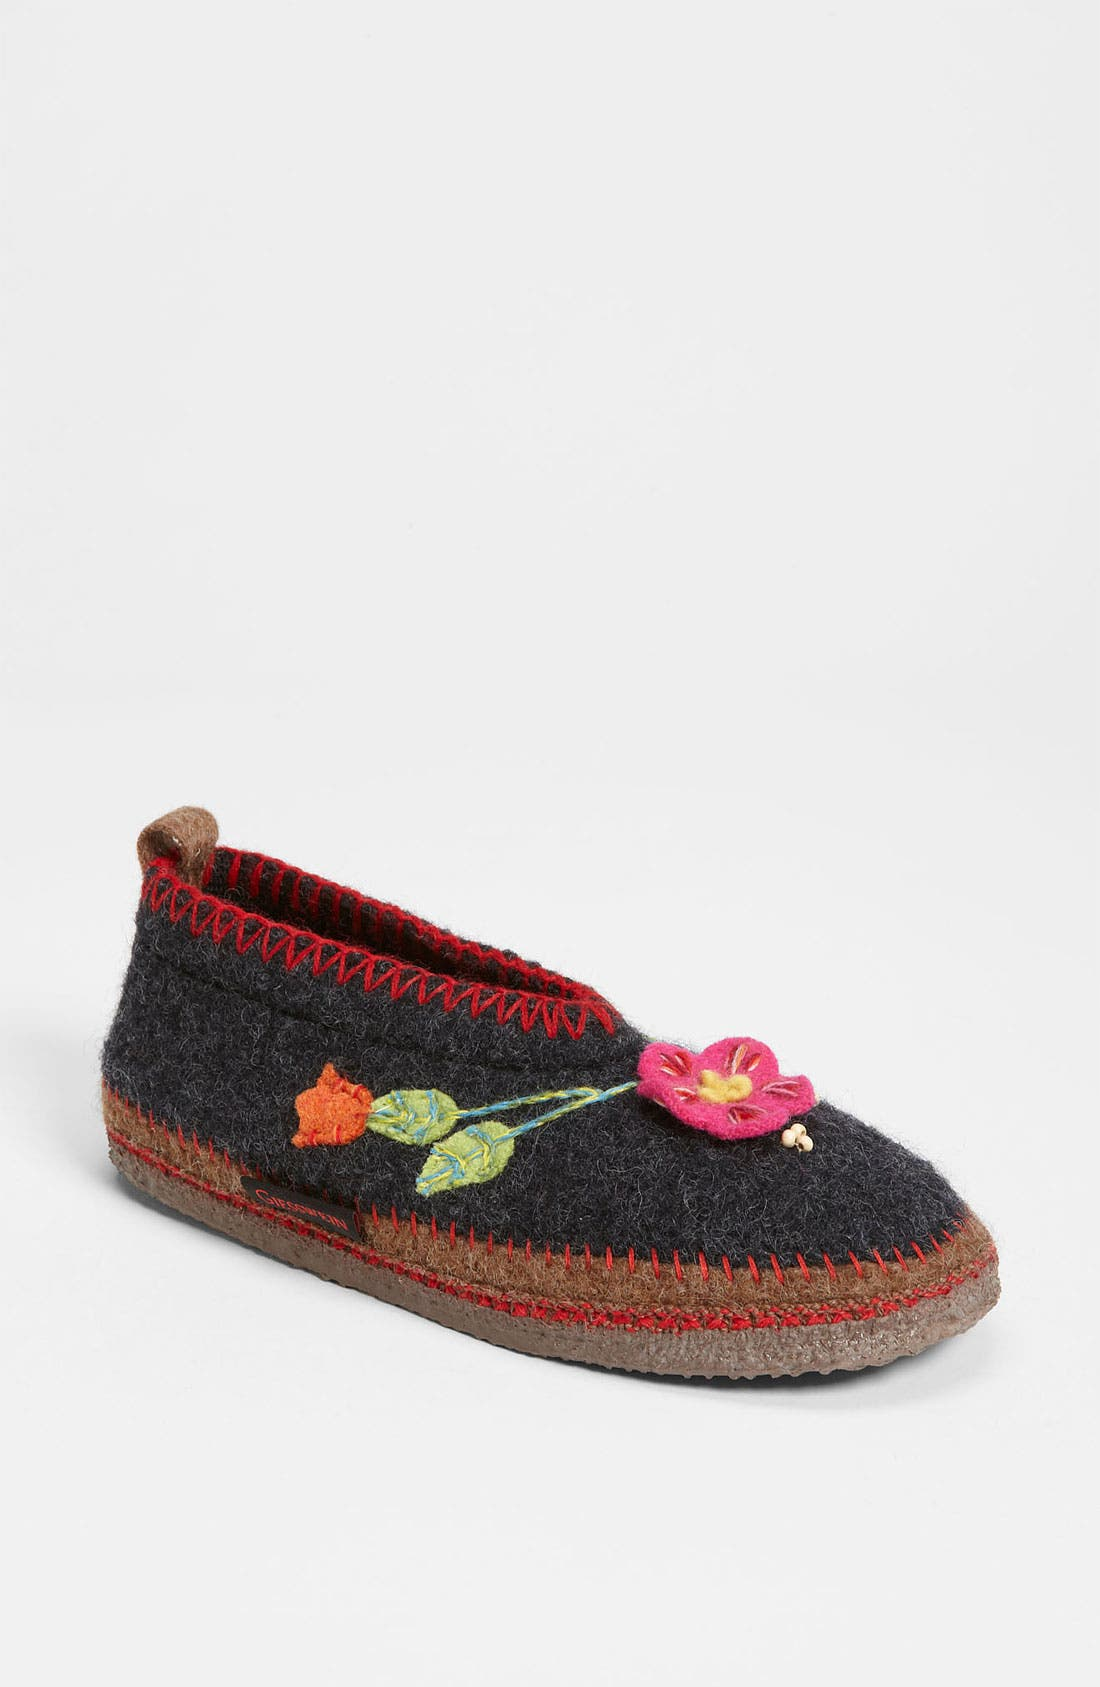 Giesswein 'Spital Flower' Slipper